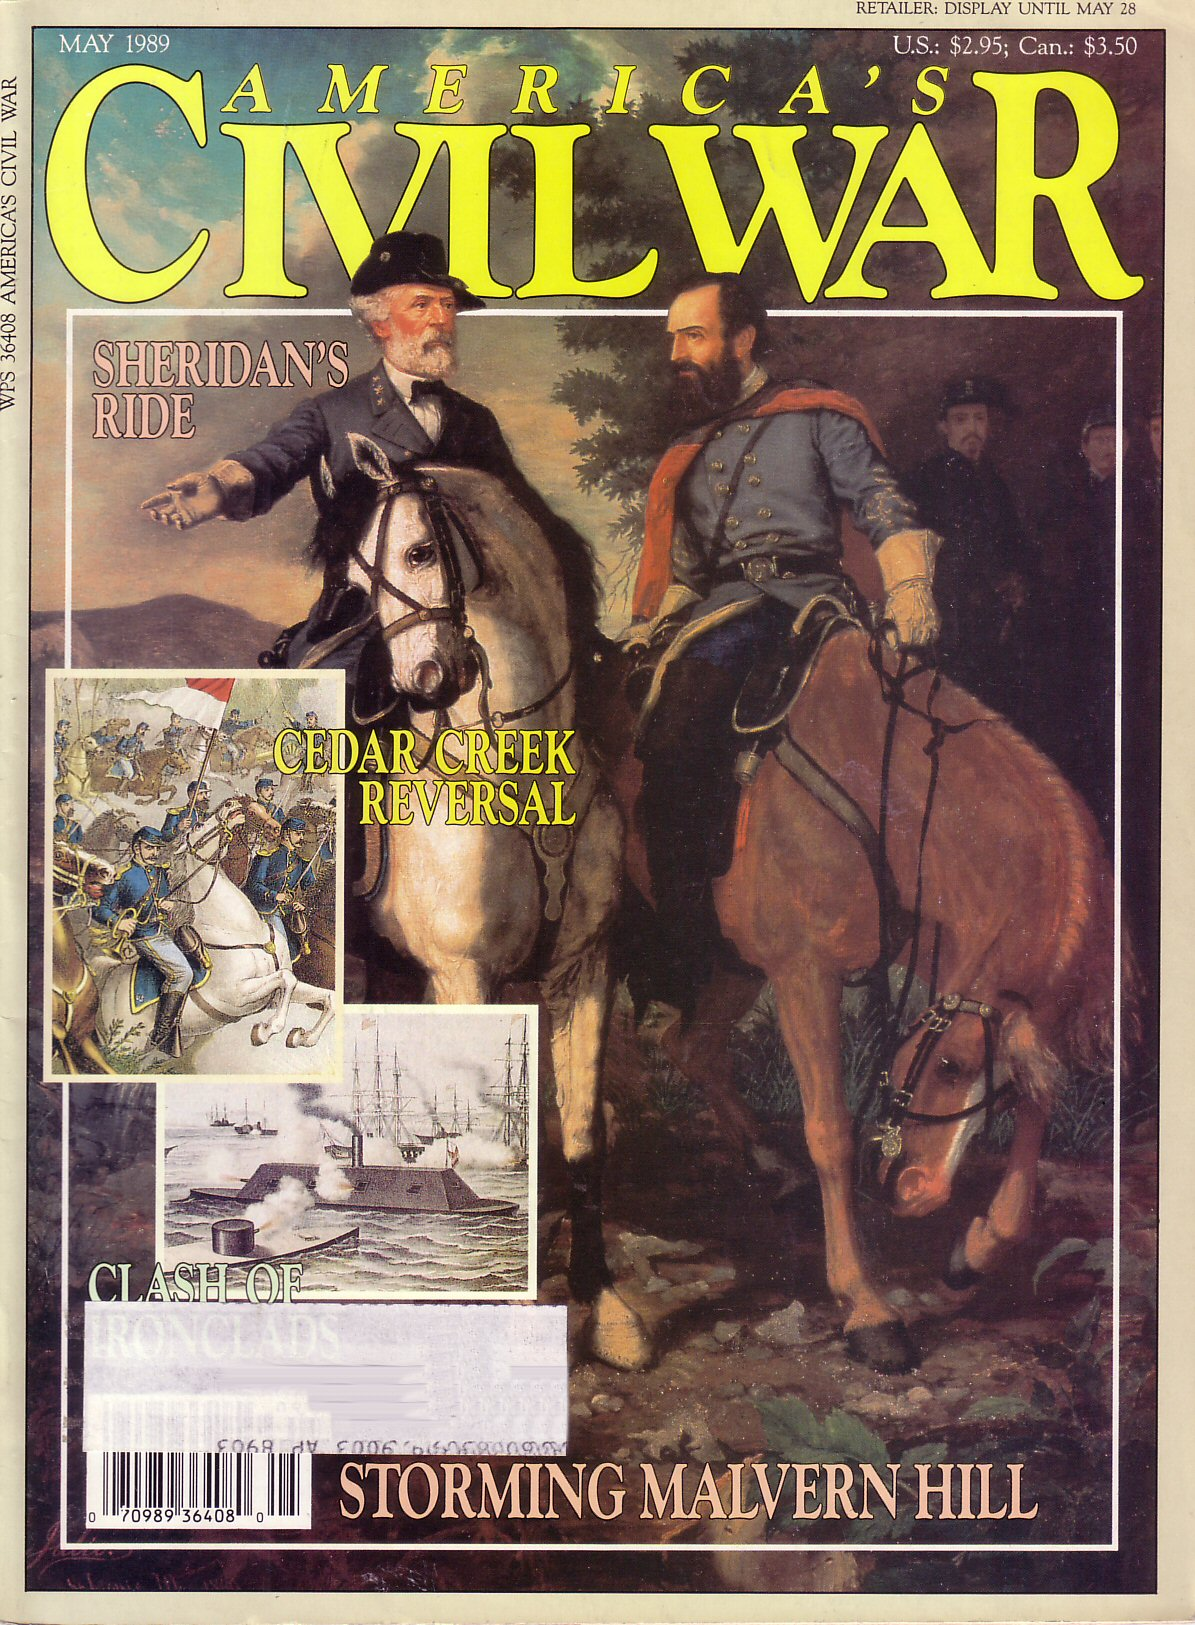 Americas Civil War, Volume 2, Number 1 (May 1989)